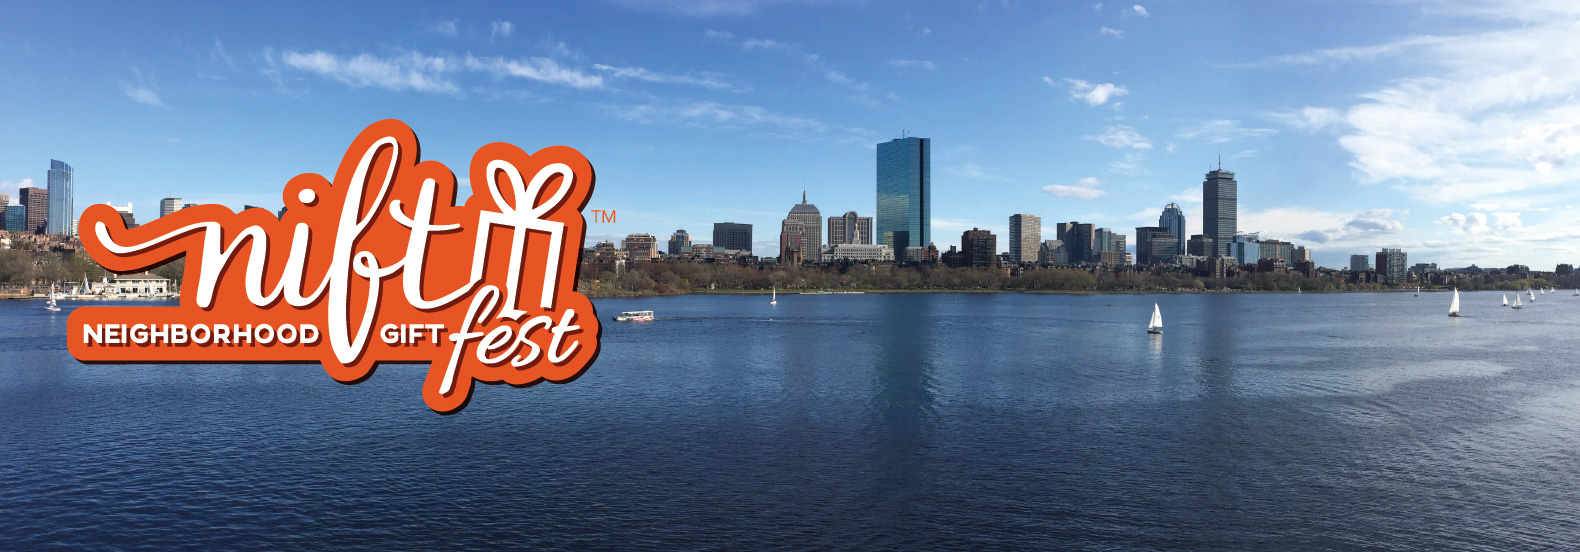 Nift Gift Fest partnering with some of the biggest hi-tech companies in Boston to give employees a treat this summer